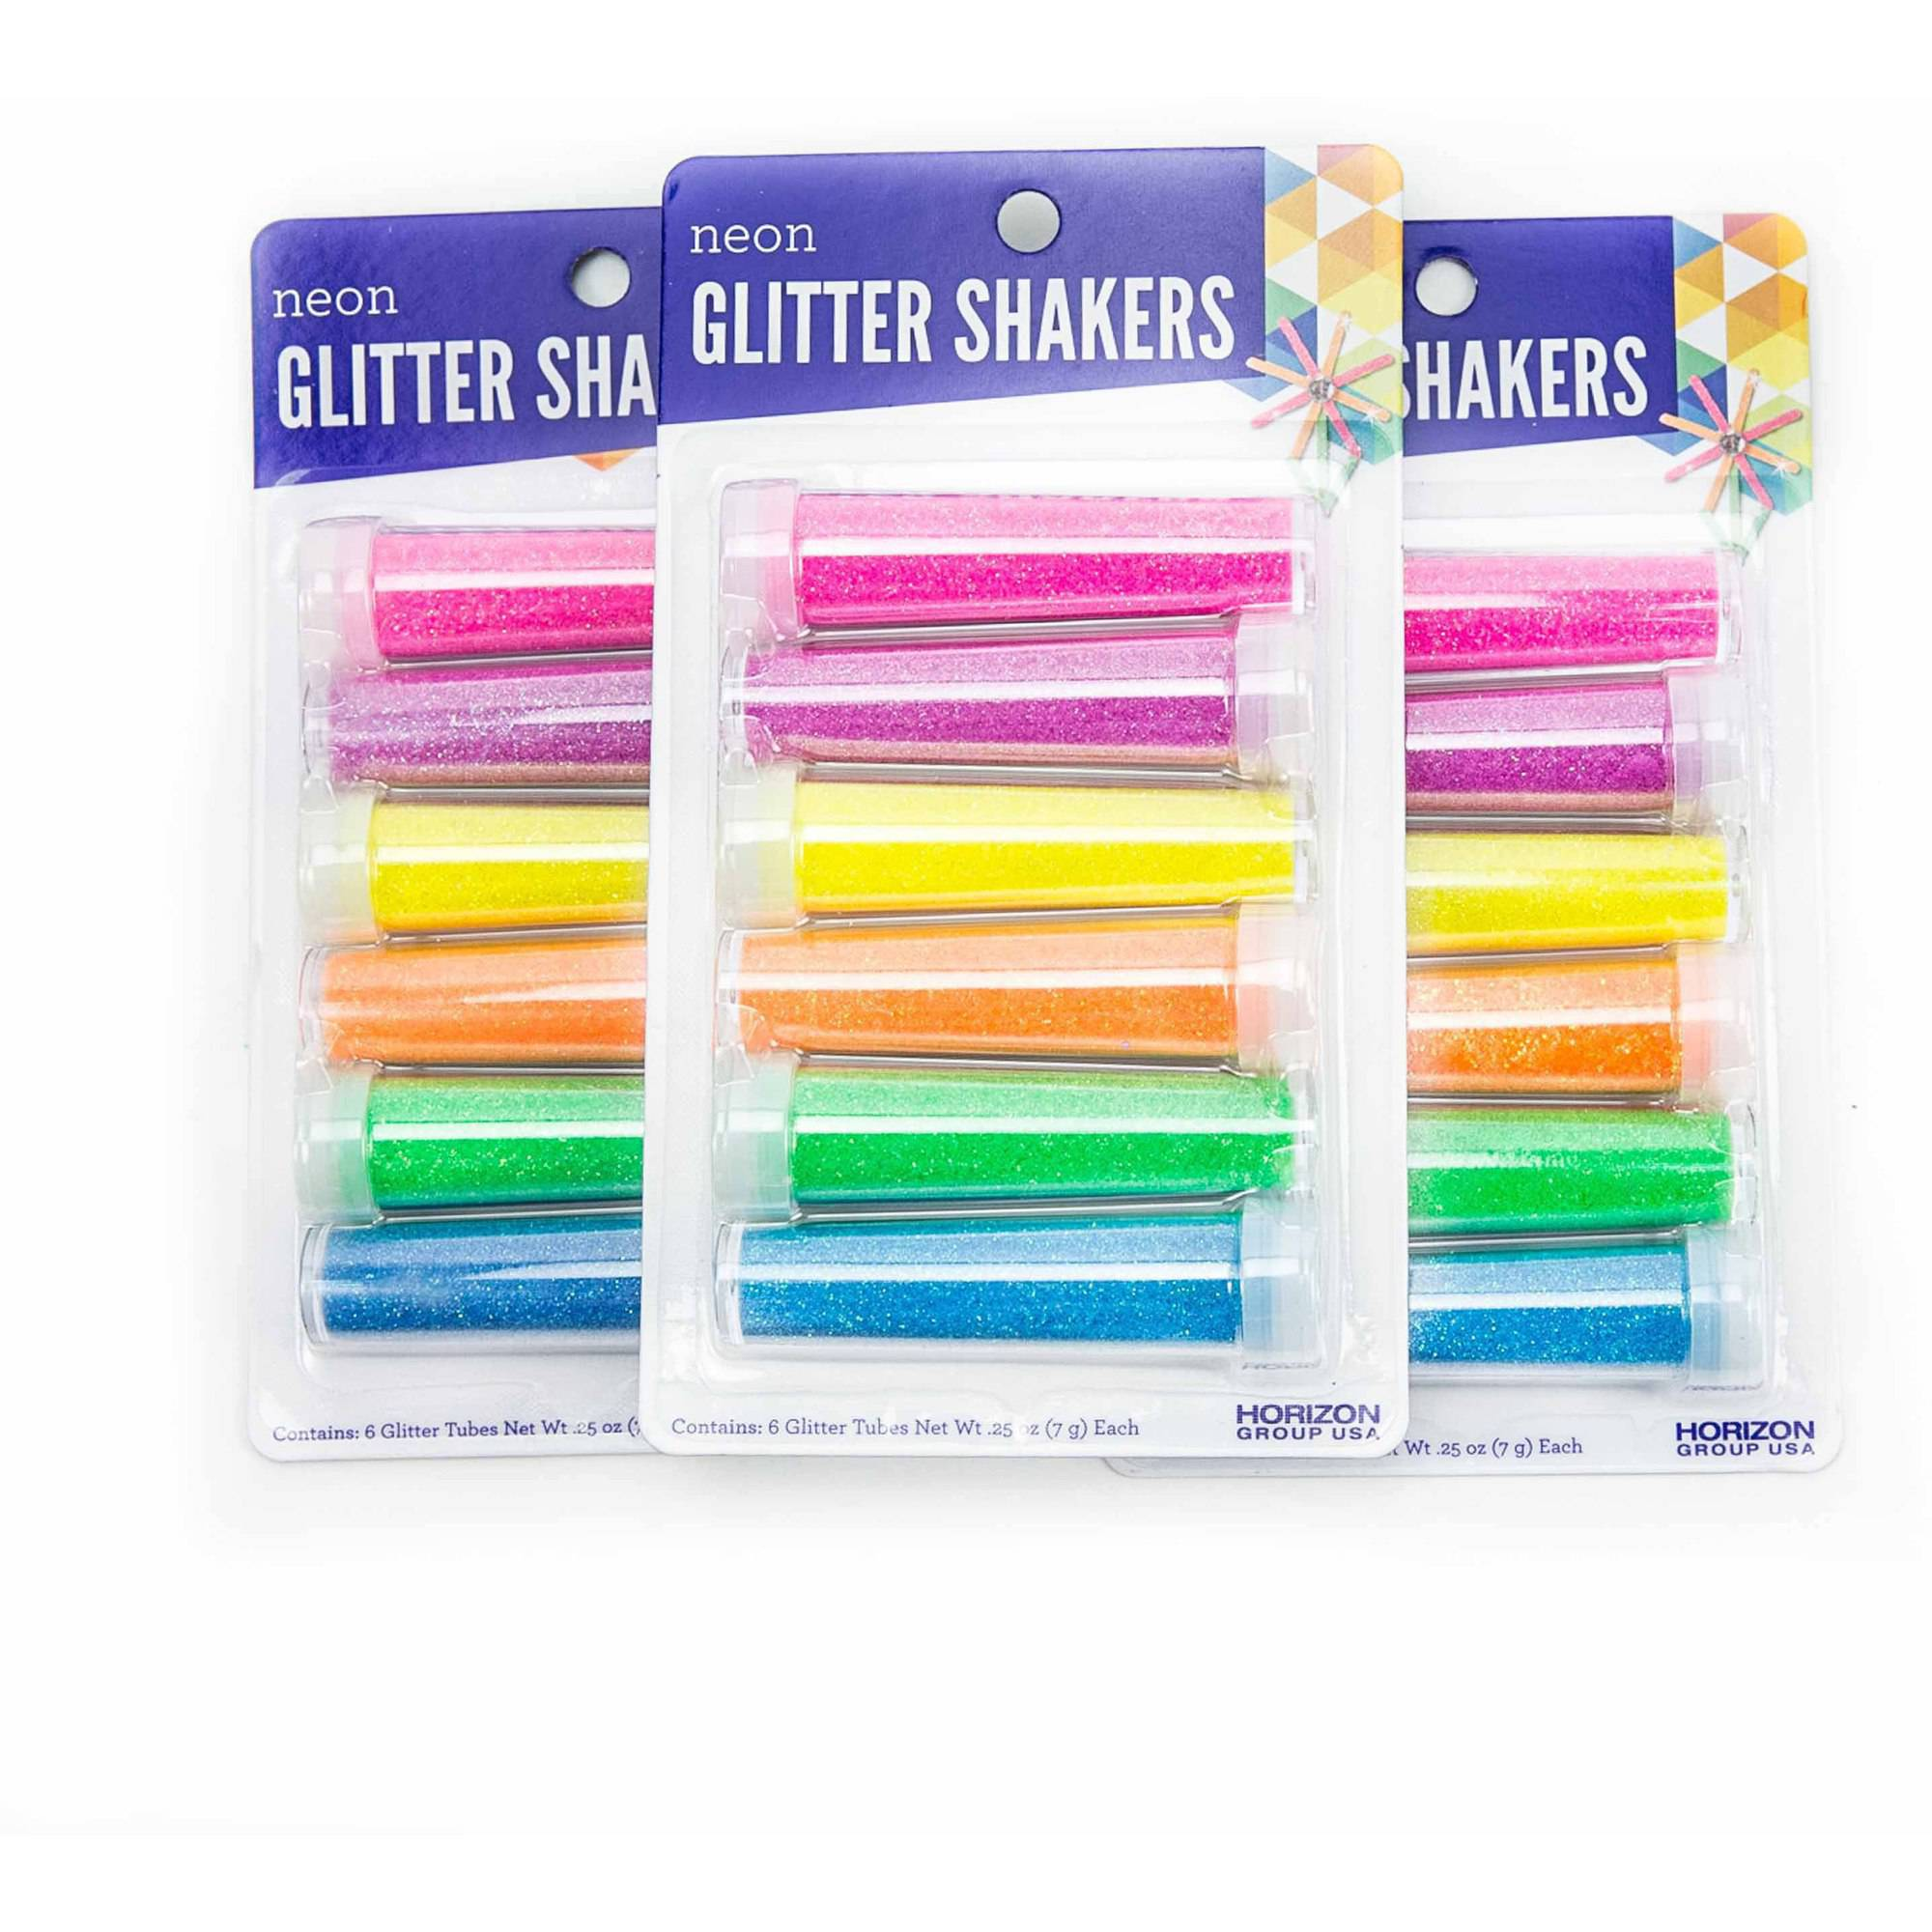 Assorted Neon Glitter Shakers, 3PKS - 6 ct. Each by Horizon Group USA